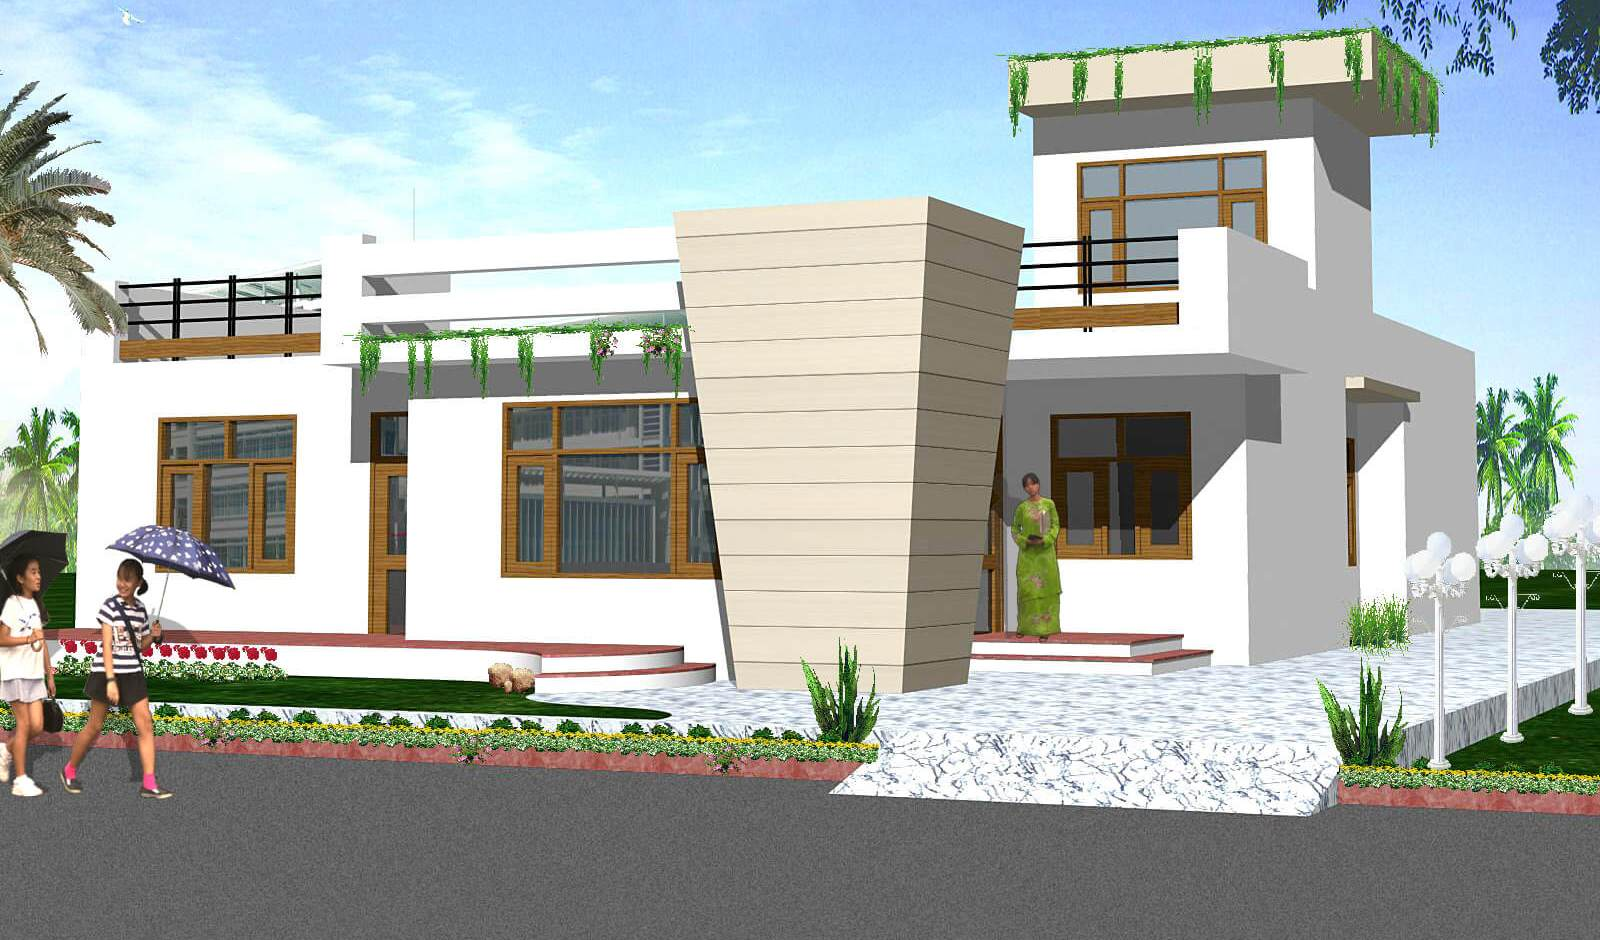 Front Elevation One Story : House front elevation single story d design photo picture